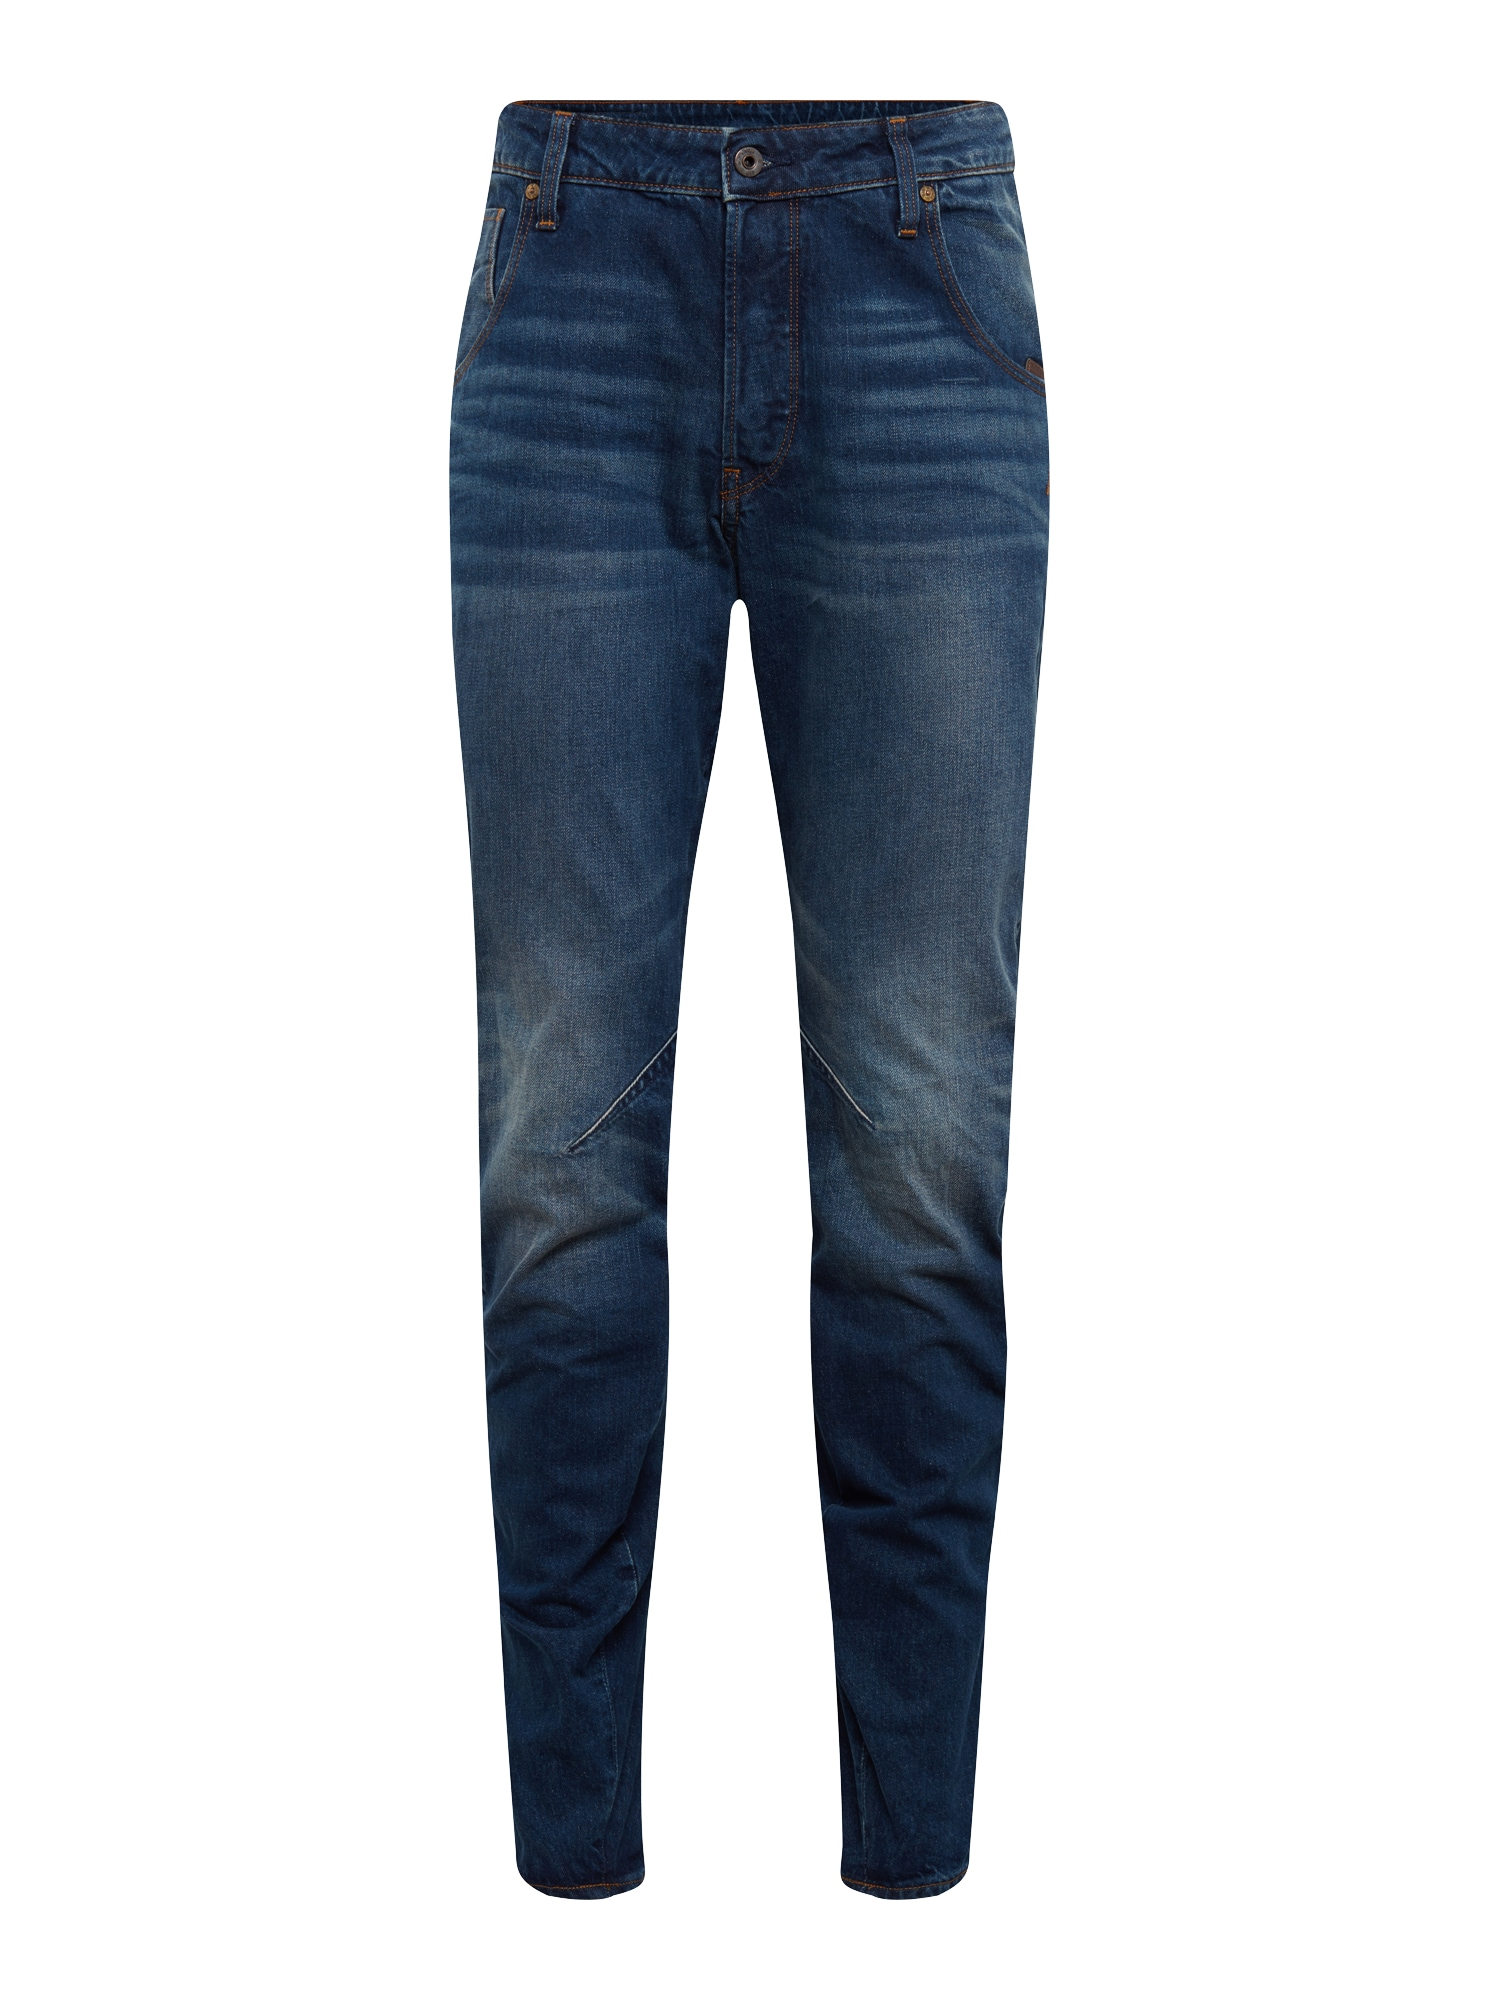 G-STAR RAW Heren Jeans Arc 3D Tapered blauw denim